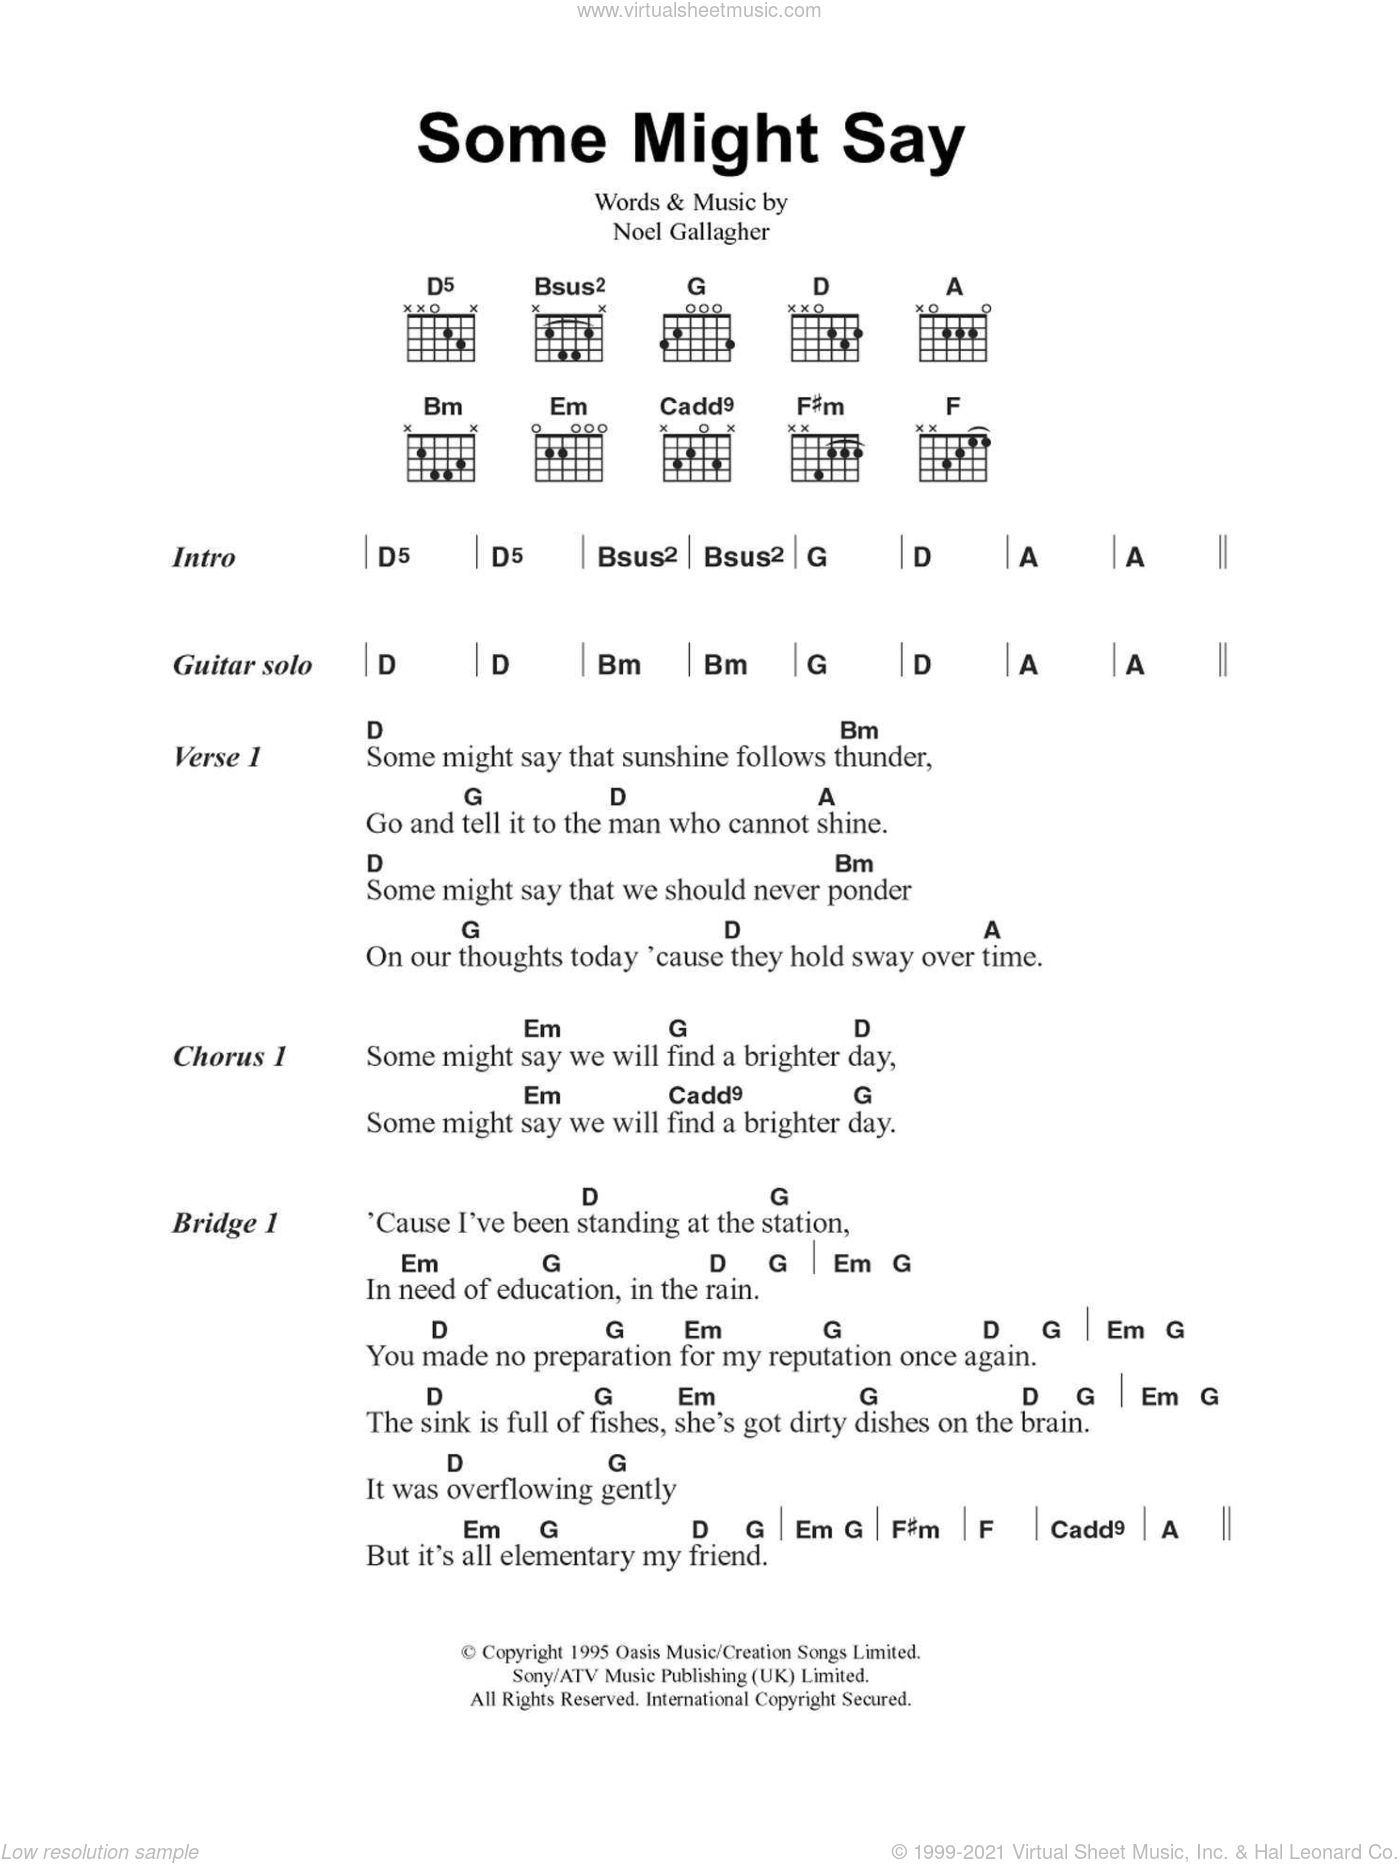 Oasis Some Might Say Sheet Music For Guitar Chords V2